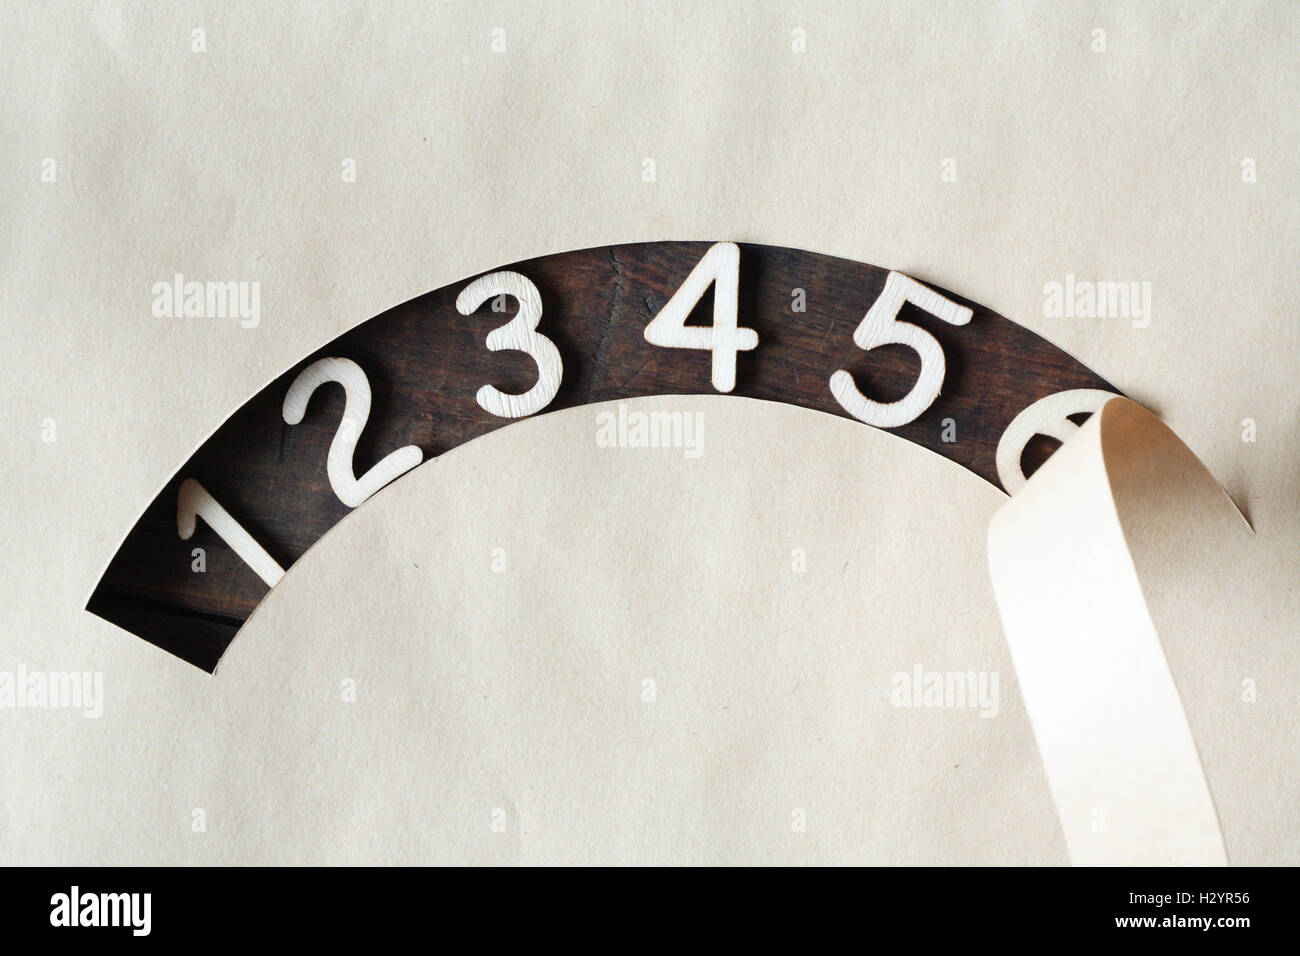 Wooden Digits - Stock Image